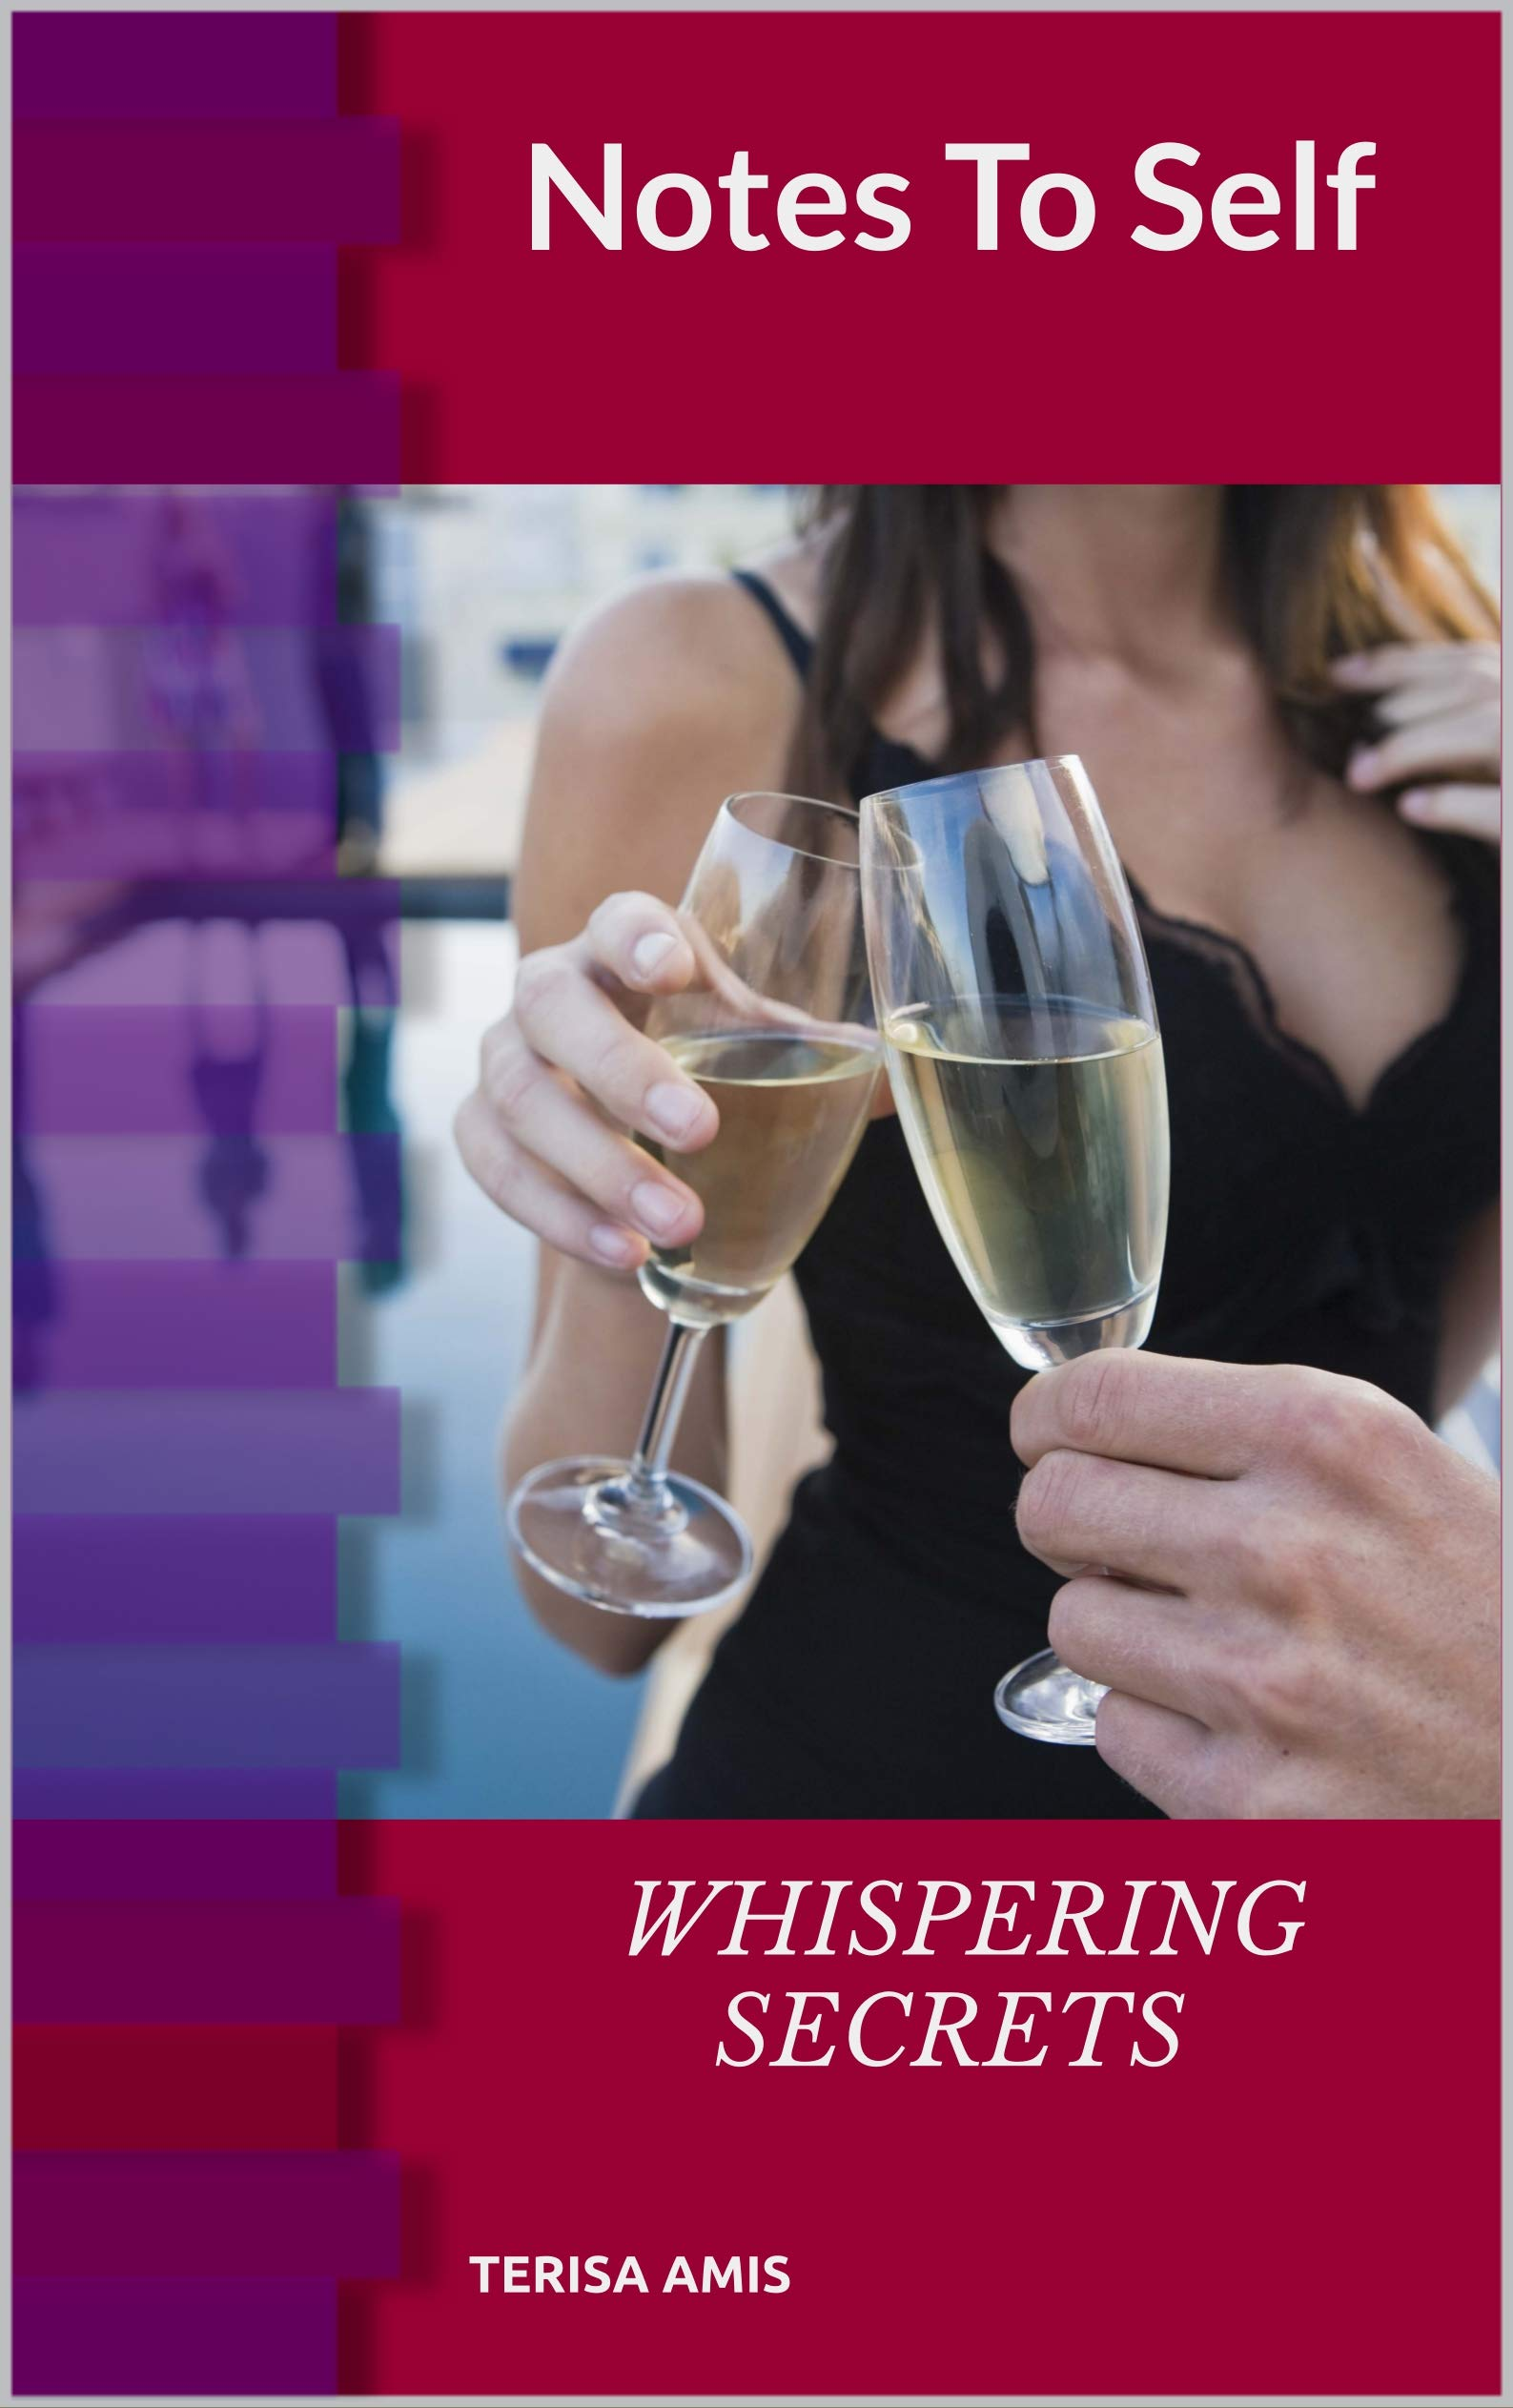 Notes To Self : Whispering Secrets of Desire & Attraction